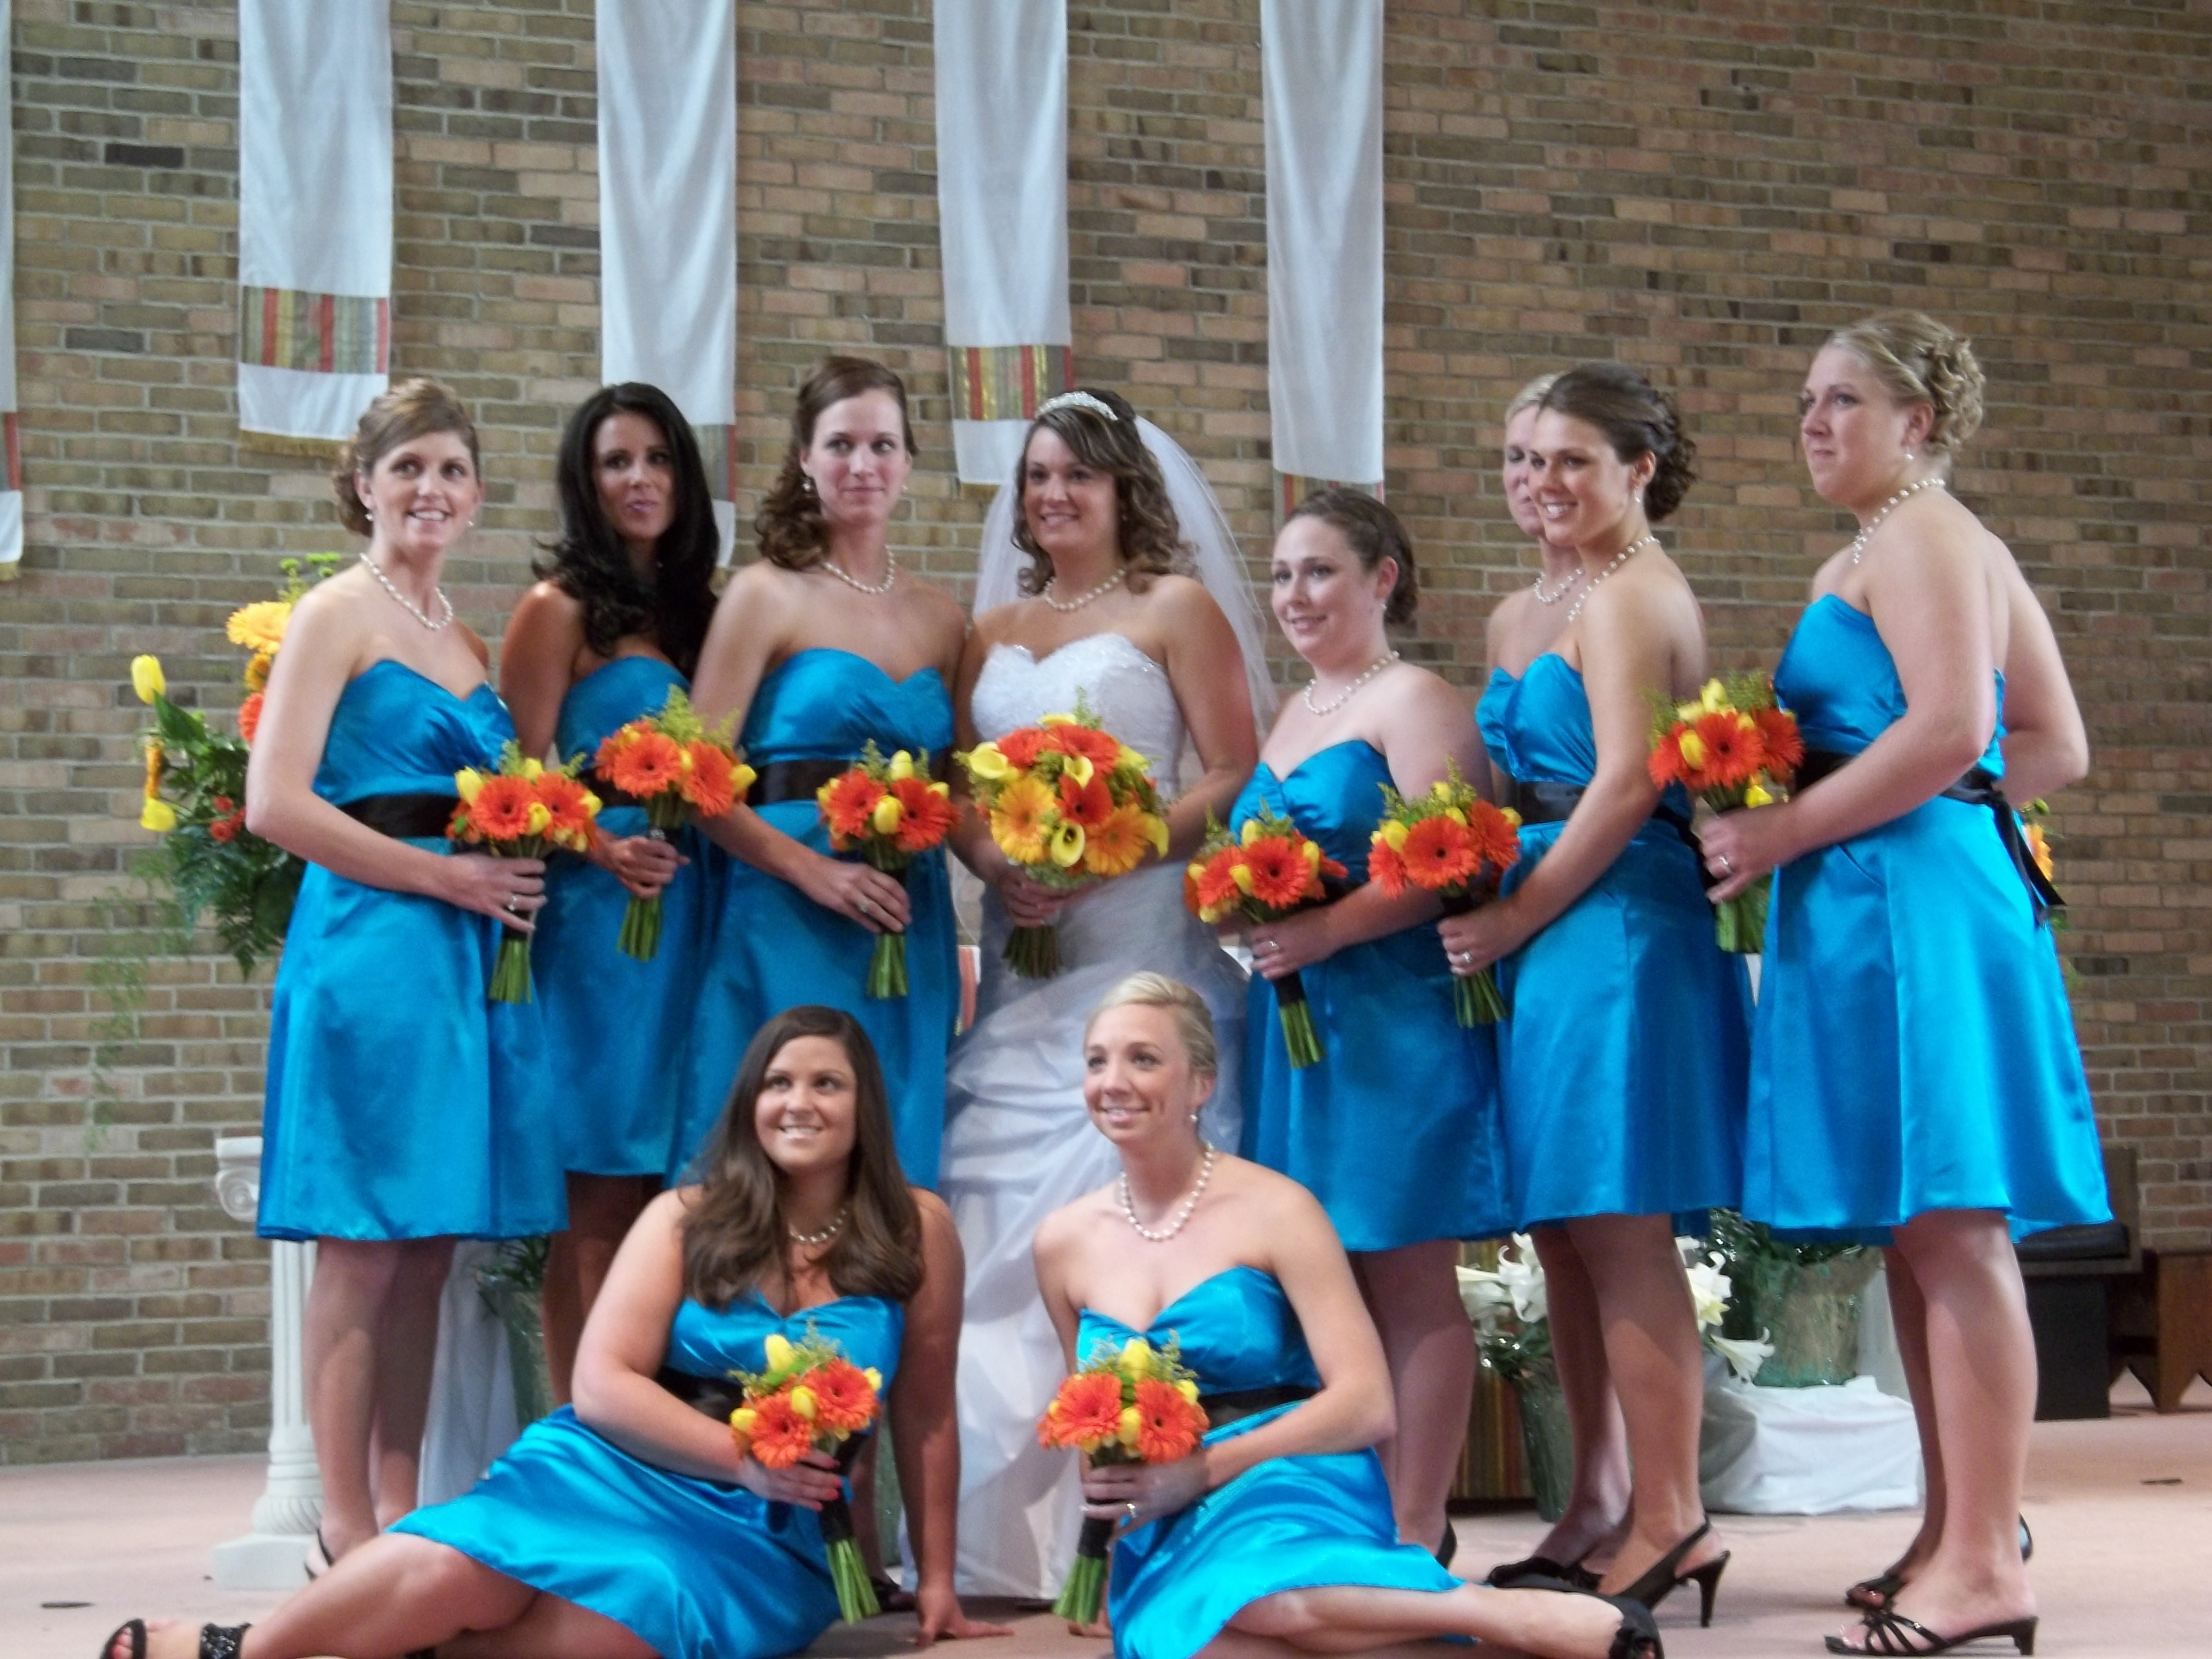 Ceremony, Flowers & Decor, Bridesmaids, Bridesmaids Dresses, Fashion, yellow, orange, blue, green, Ceremony Flowers, Bridesmaid Bouquets, Flowers, Flower Wedding Dresses